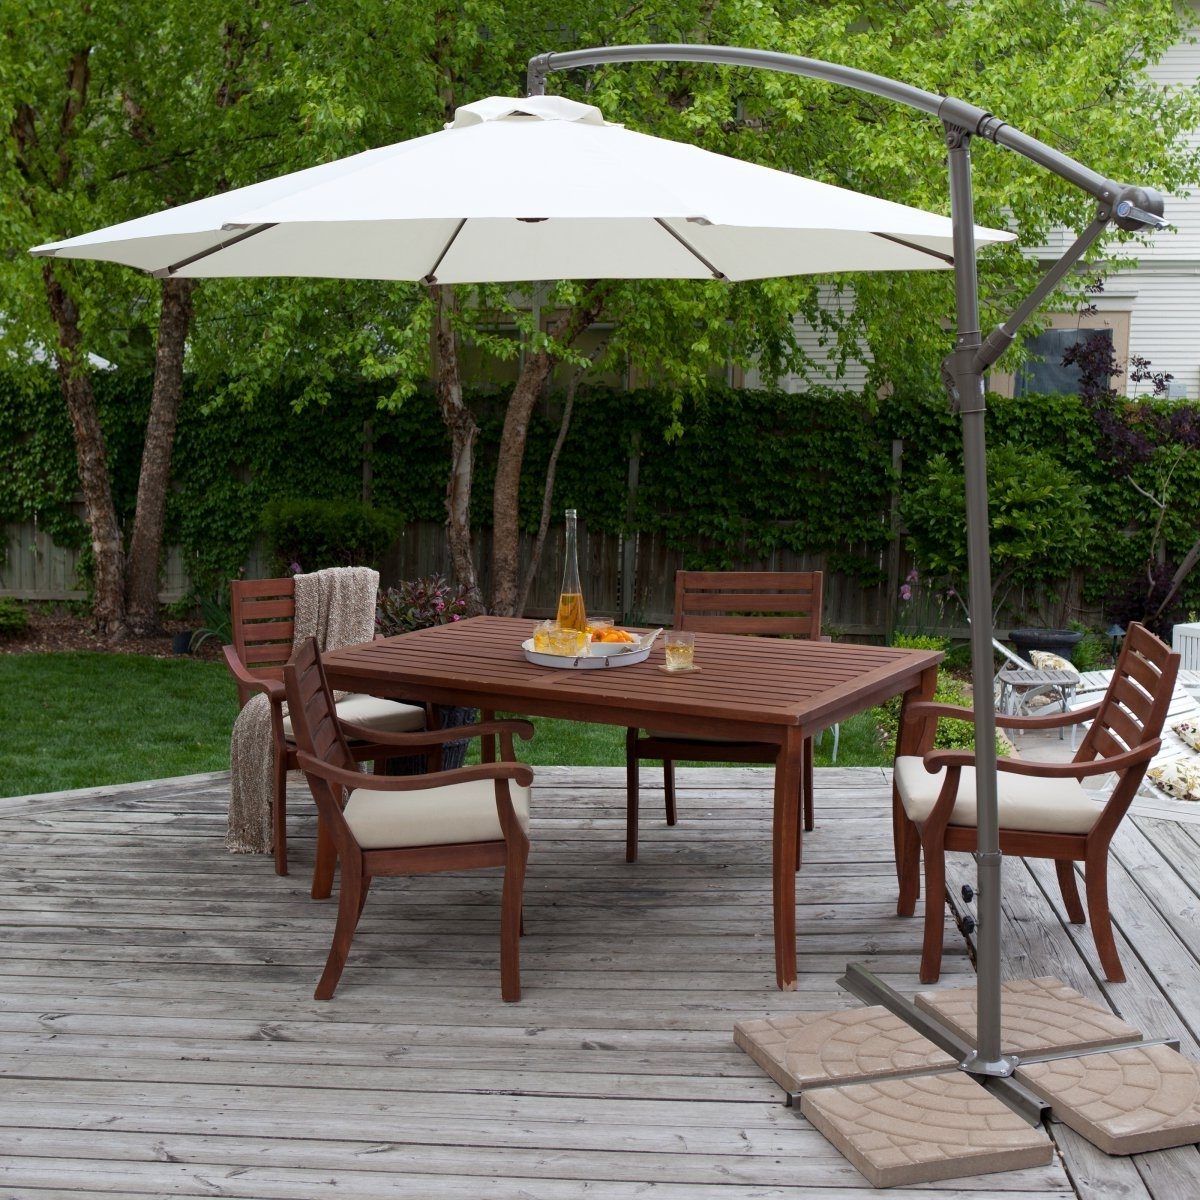 2019 The Patio Table Umbrella For Comfort Gathering — Mistikcamping Home Inside Patio Tables With Umbrellas (View 1 of 20)